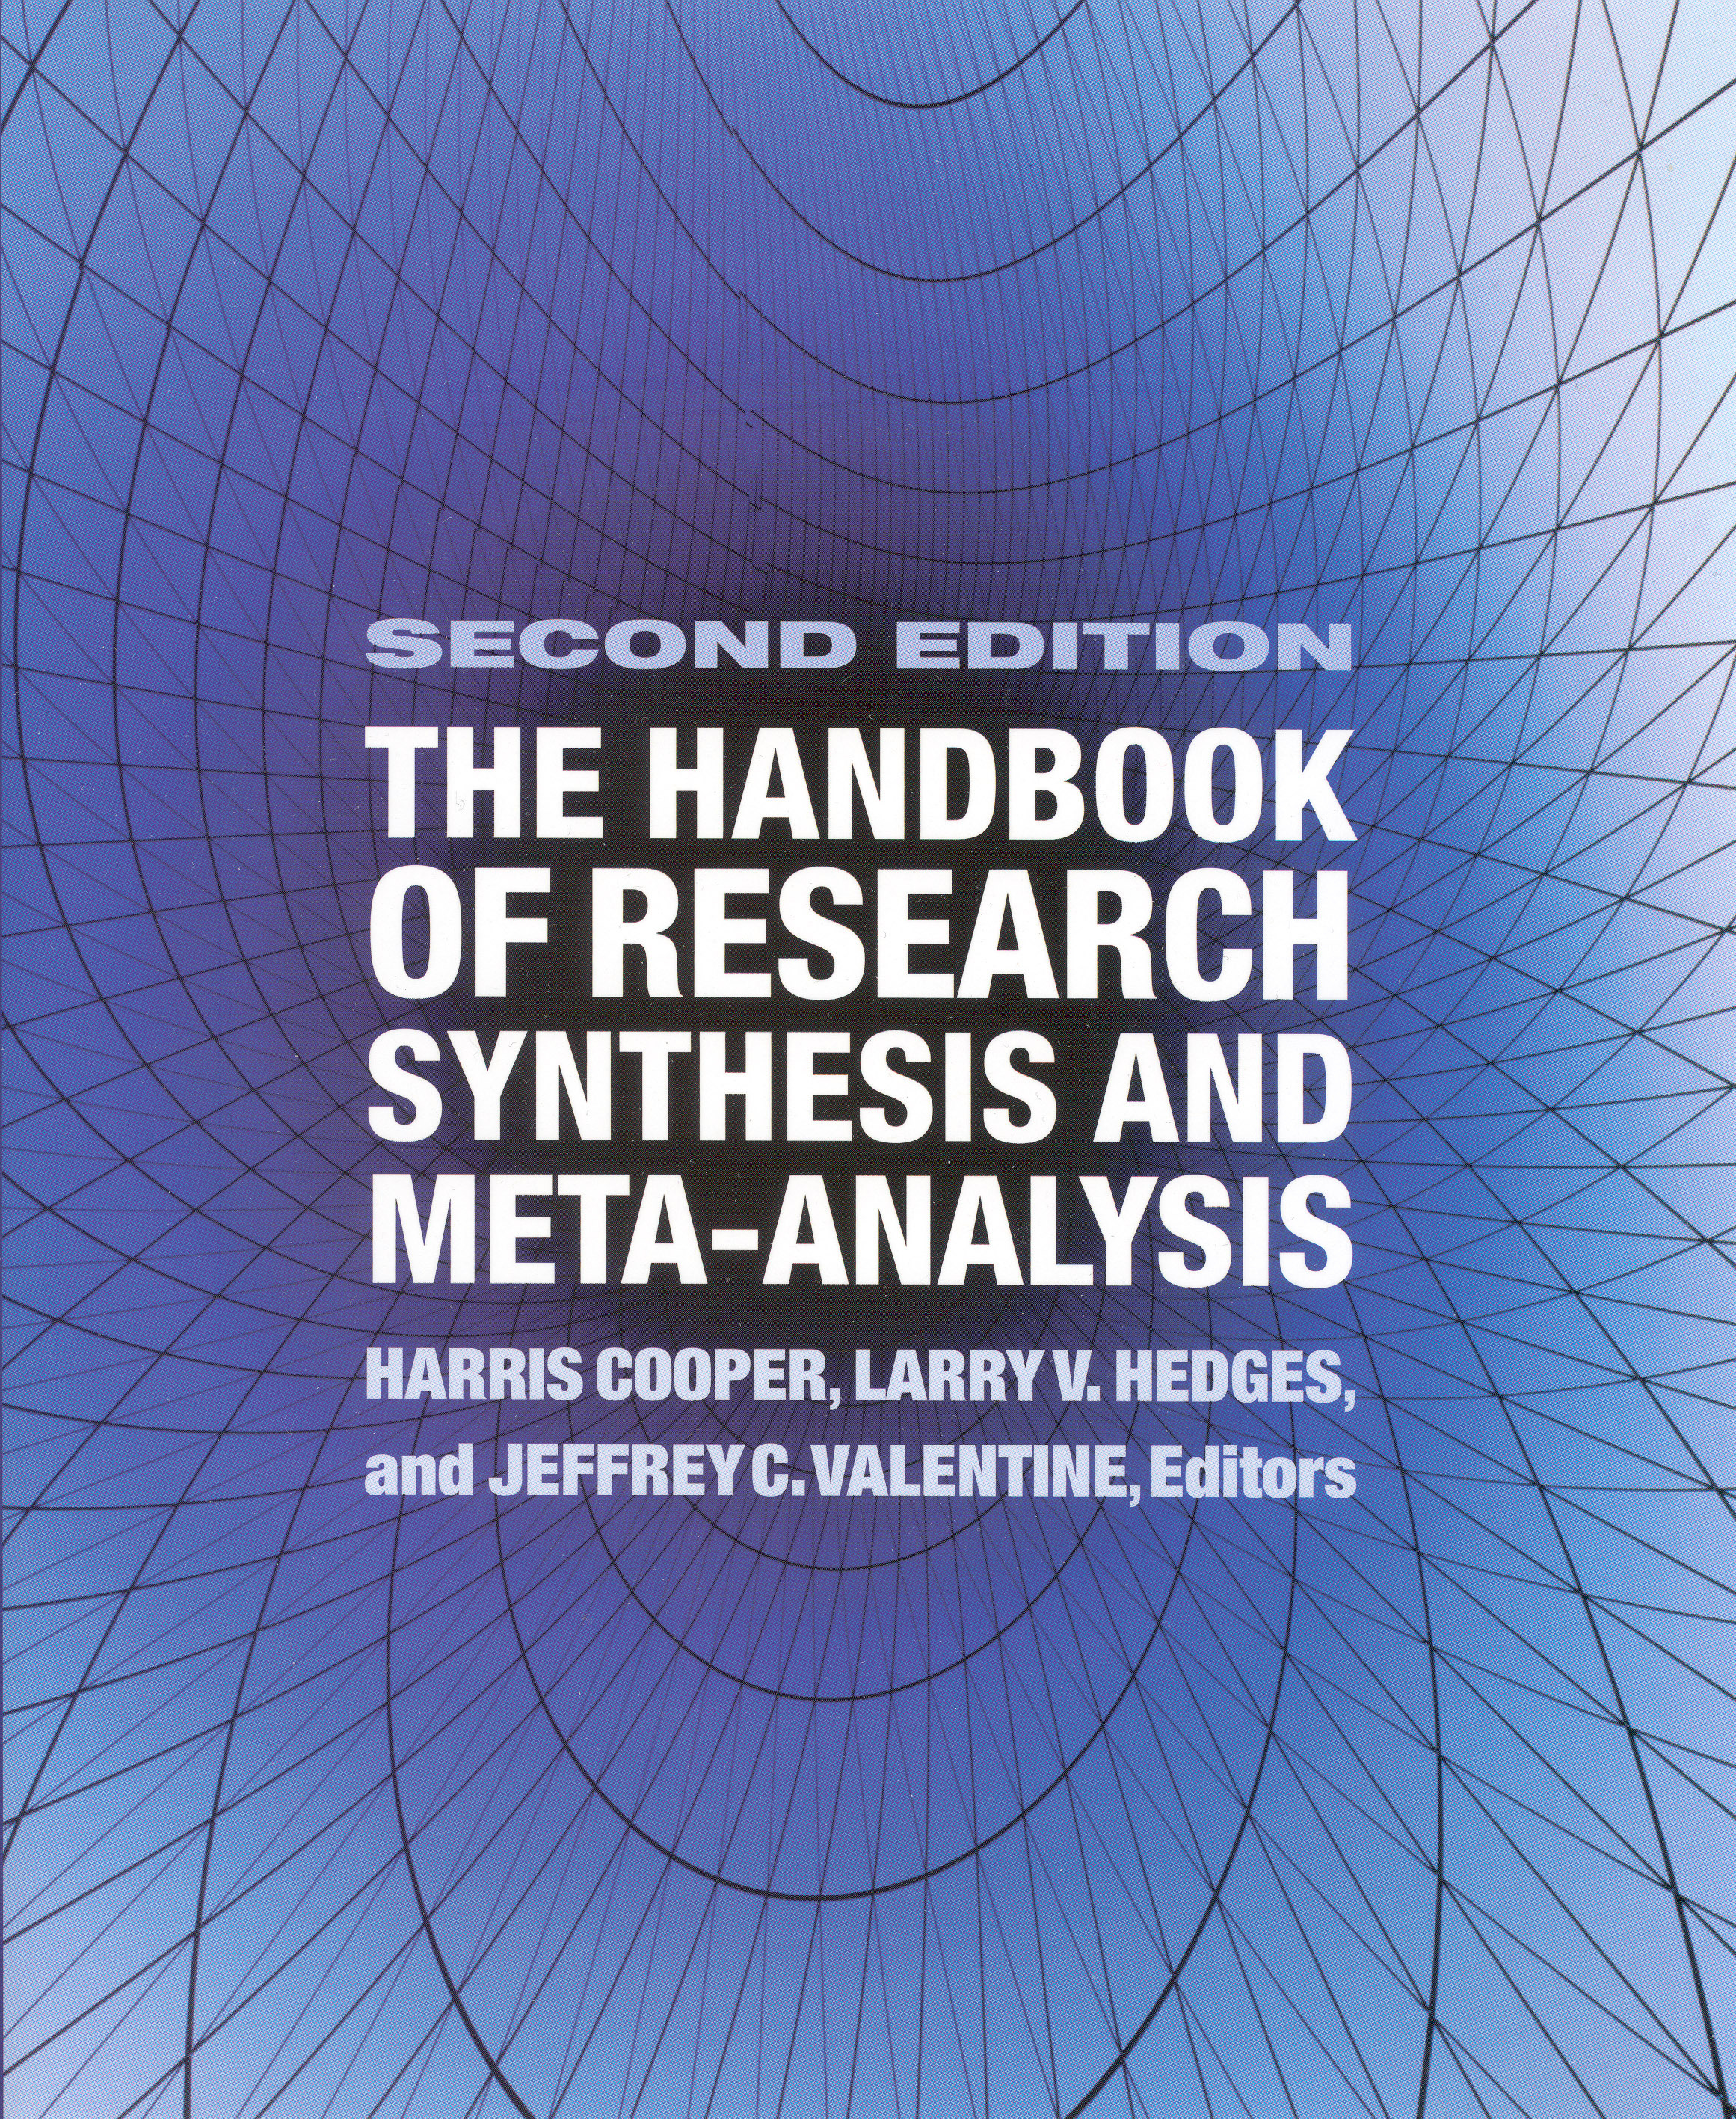 The Handbook of Research Synthesis and Meta-Analysis, Second Edition